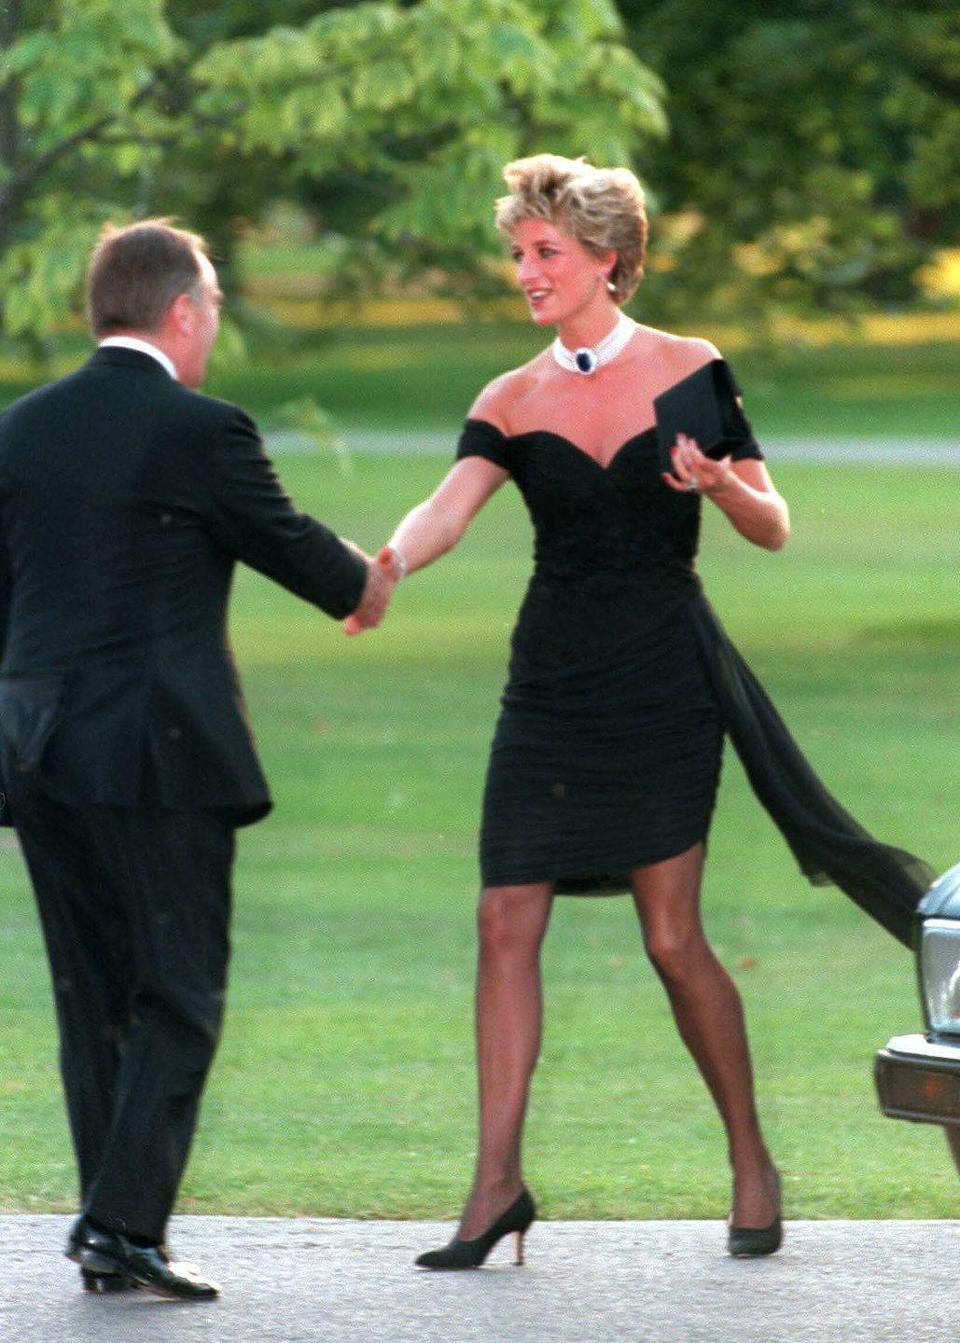 "<p>Has anyone ever rocked a LBD better than Diana? We think not. On the day that Charles admitted his infidelity in a televised interview, Diana wore this fabulous black dress by <a href=""http://www.christinastambolian.com/"" rel=""nofollow noopener"" target=""_blank"" data-ylk=""slk:Christina Stambolian"" class=""link rapid-noclick-resp"">Christina Stambolian</a>. Enough said. </p>"